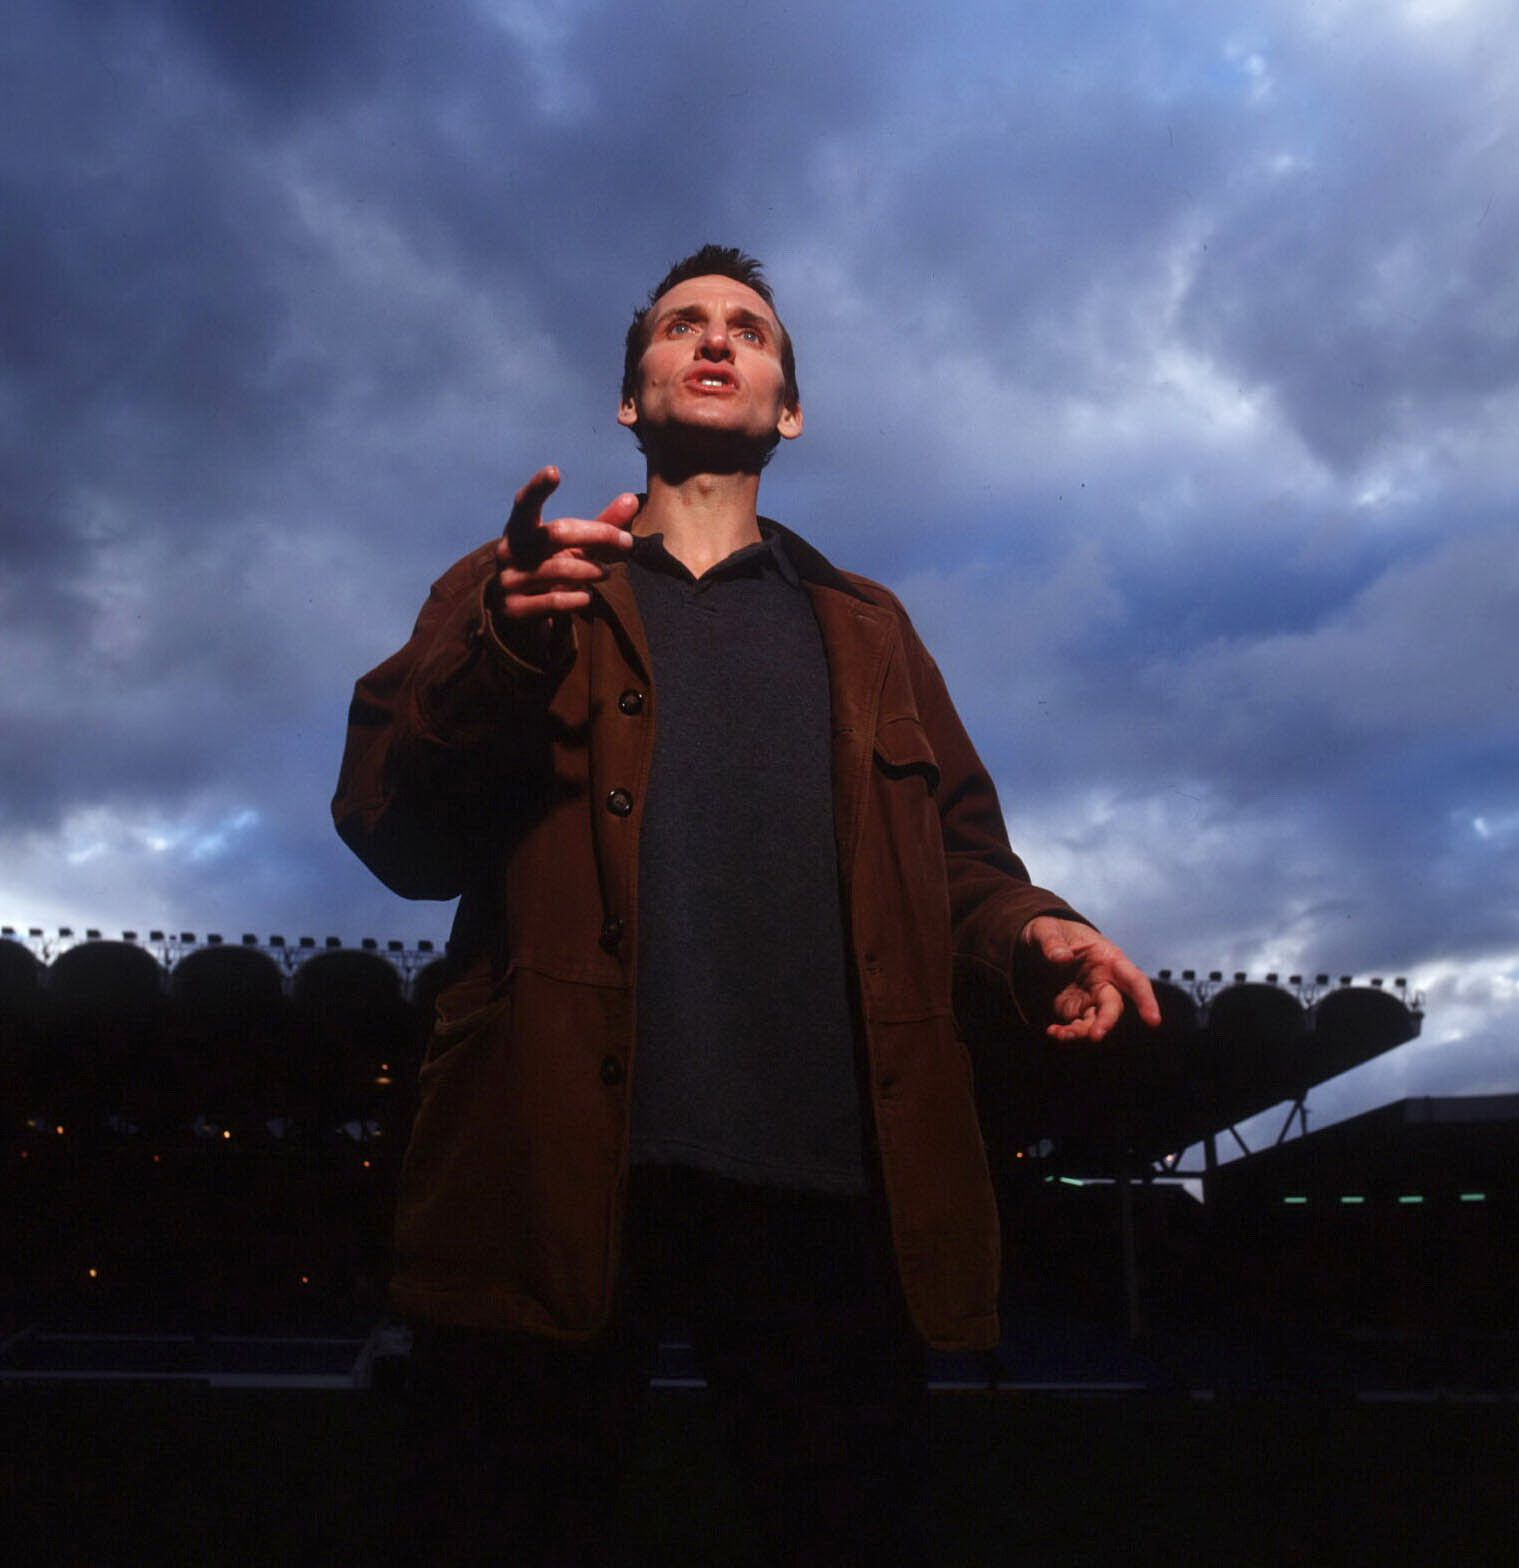 the-second-coming-christopher-eccleston.jpg